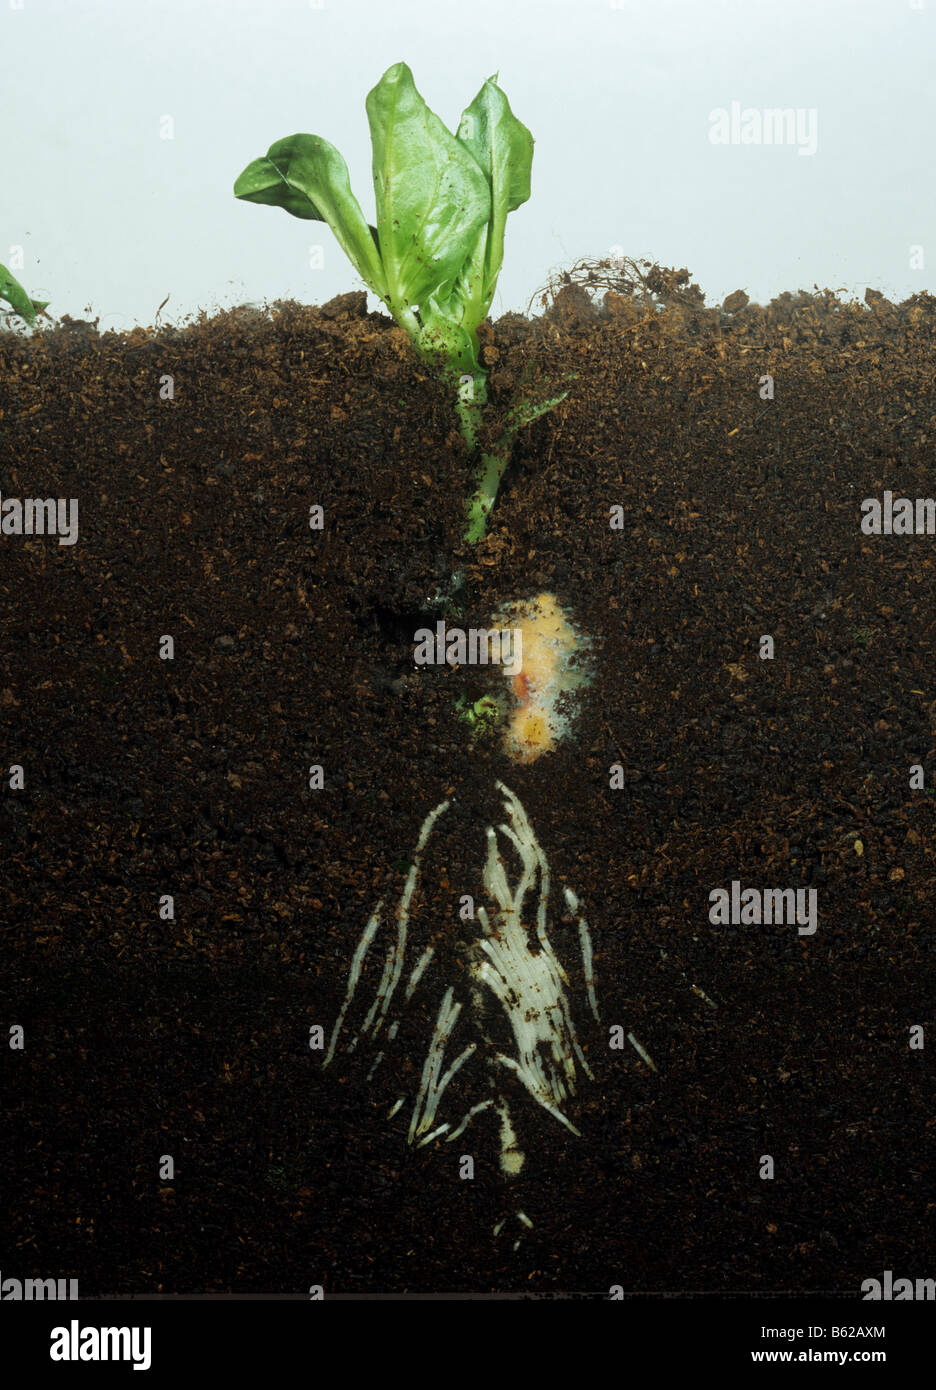 Bean Vicia faba seedling plant emerging showing root and shoot development in a glass sided tank - Stock Image